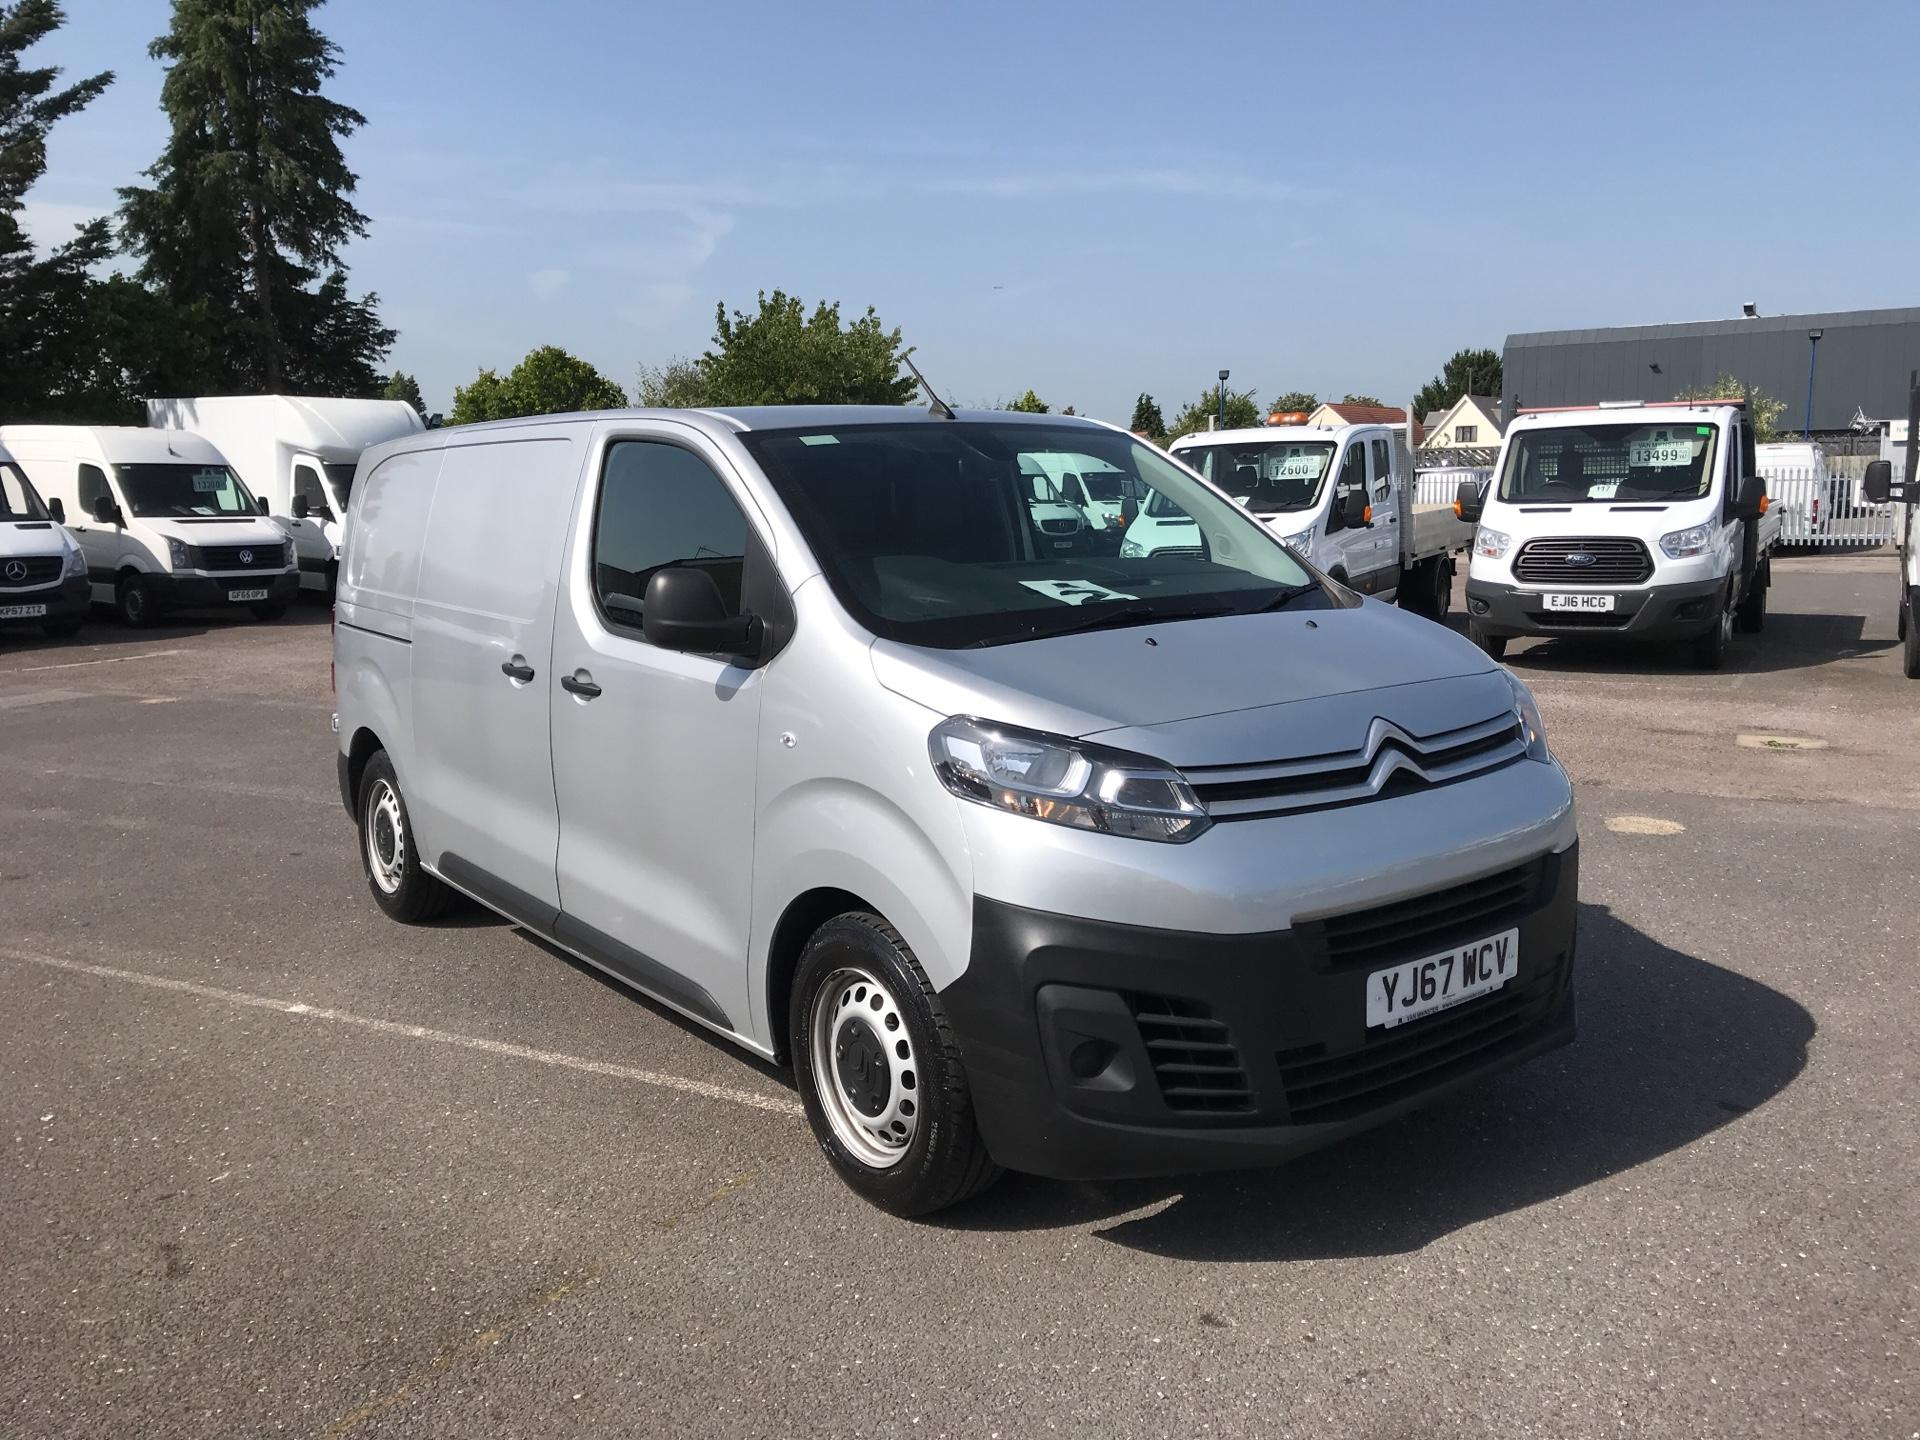 2017 Citroen Dispatch 1000 1.6 Bluehdi 95 Van Enterprise Euro 6 (YJ67WCV)